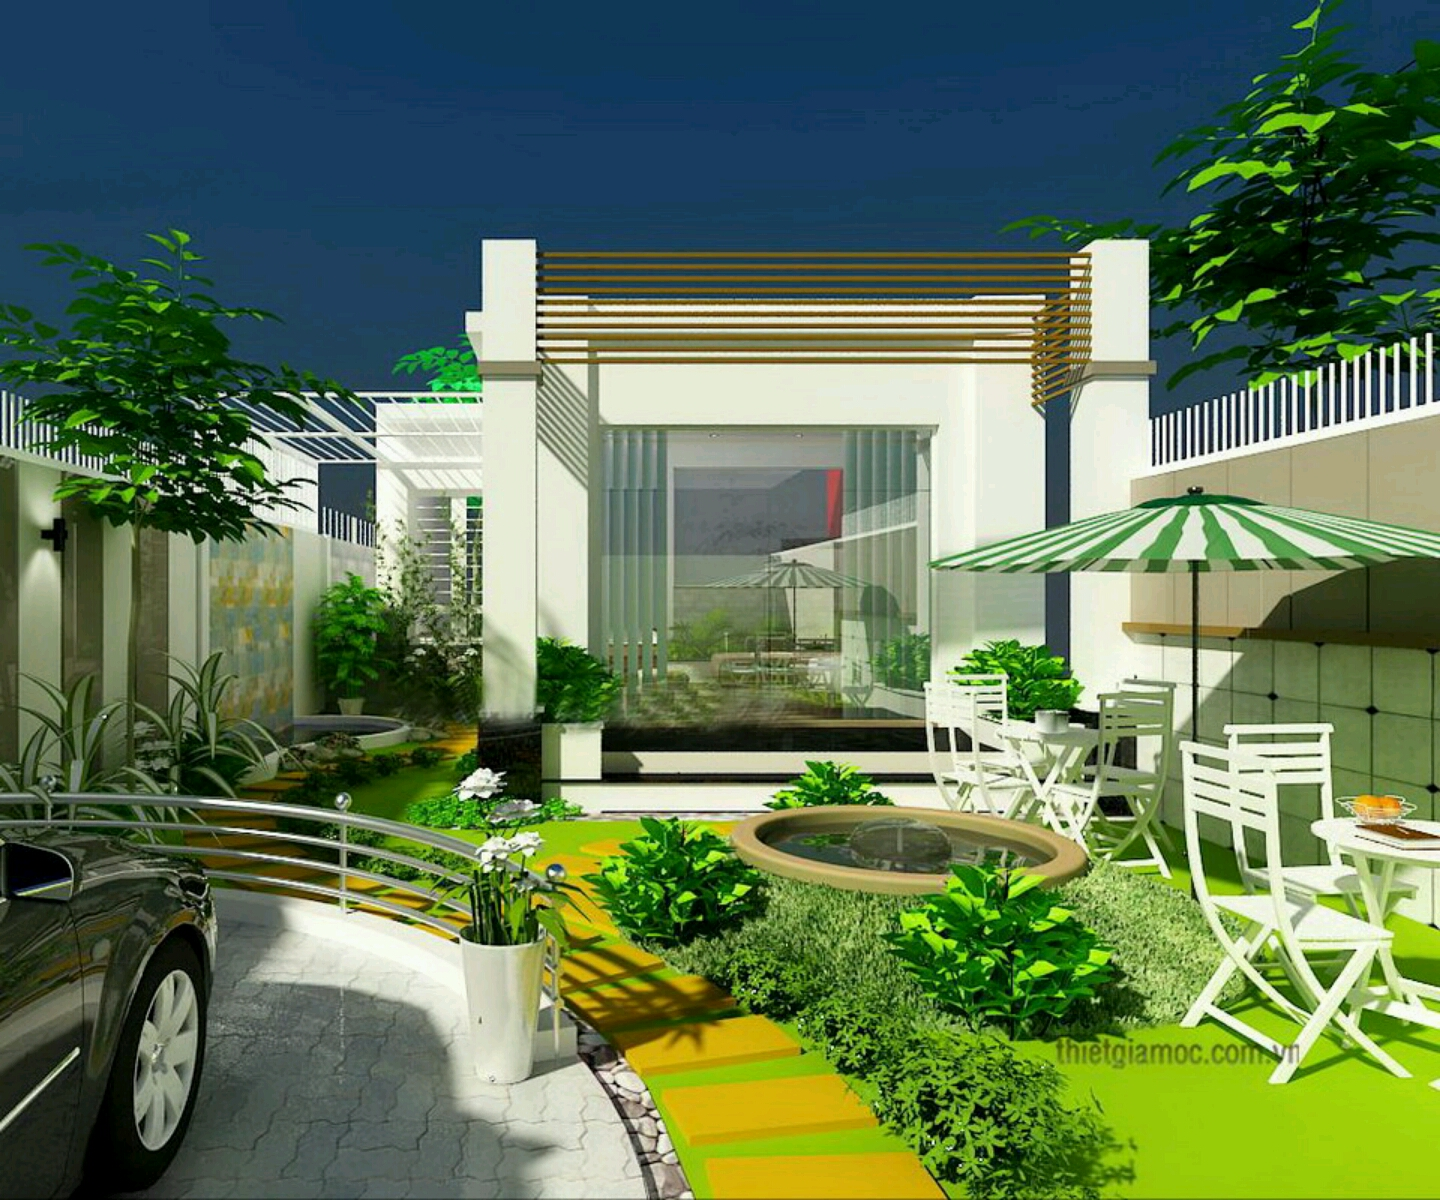 Home Garden Design Ideas: Modern Homes Beautiful Garden Designs Ideas.